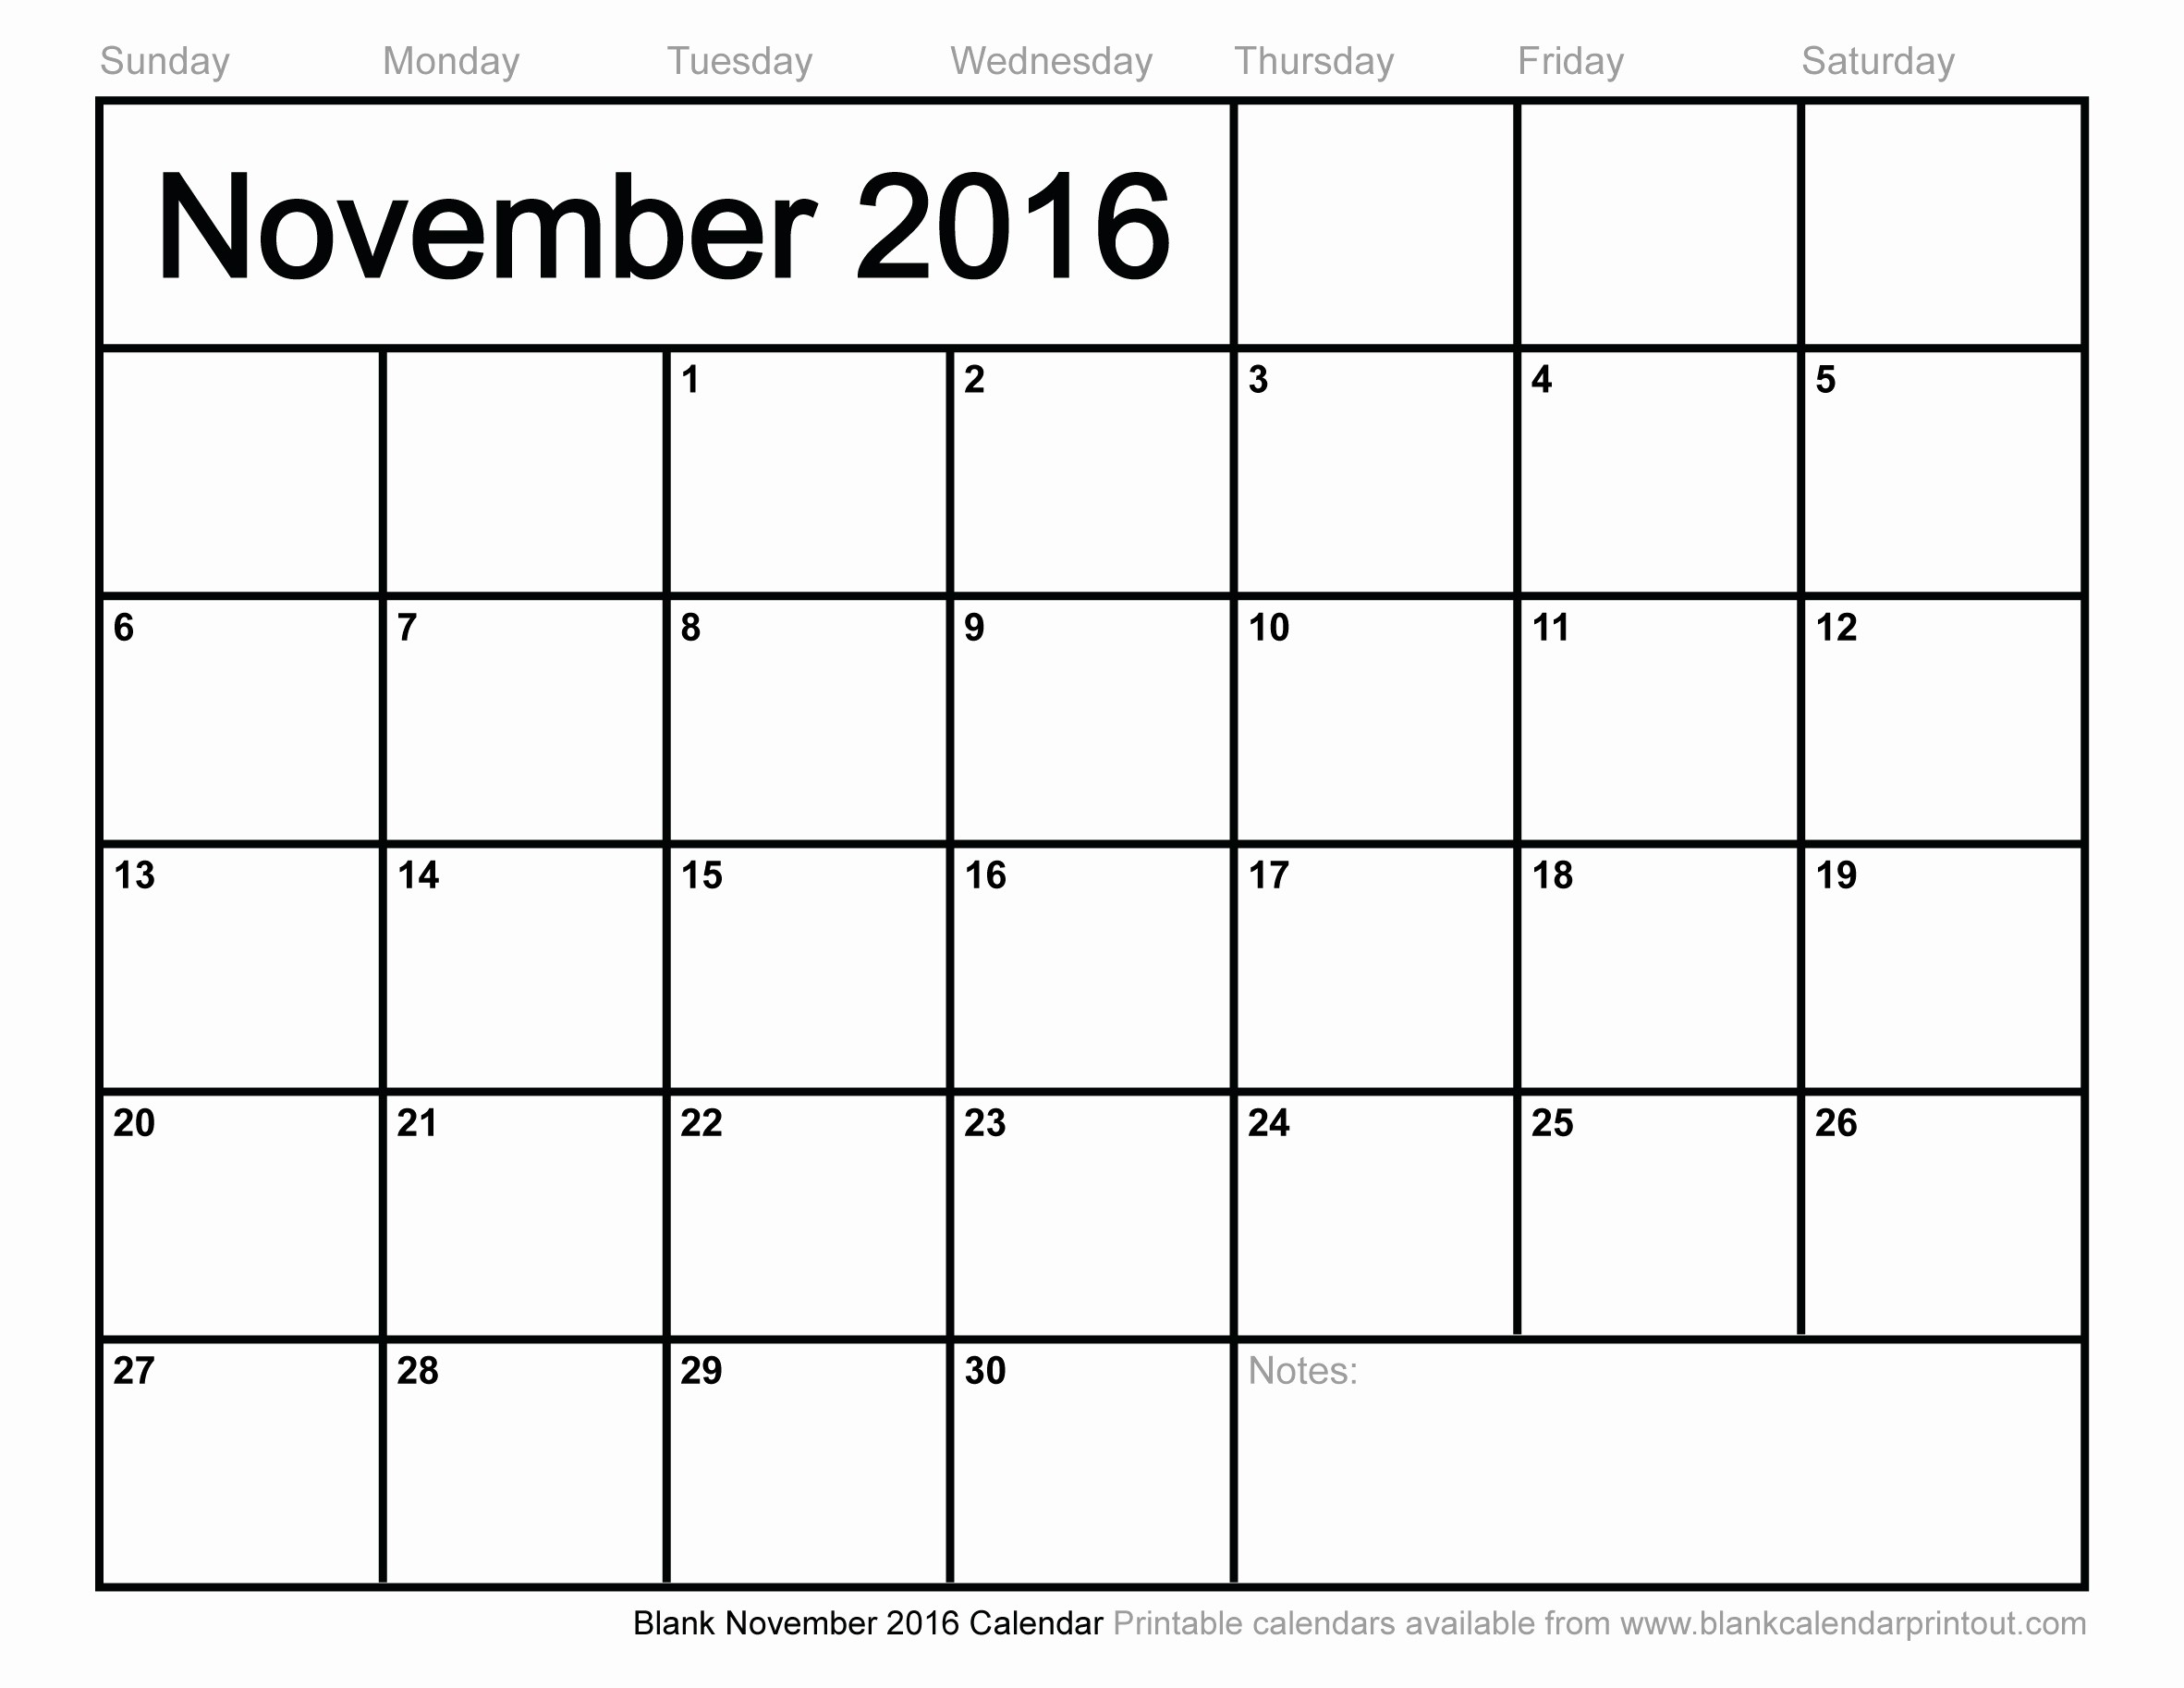 Blank December Calendar 2016 Printable Beautiful Blank November 2016 Calendar to Print